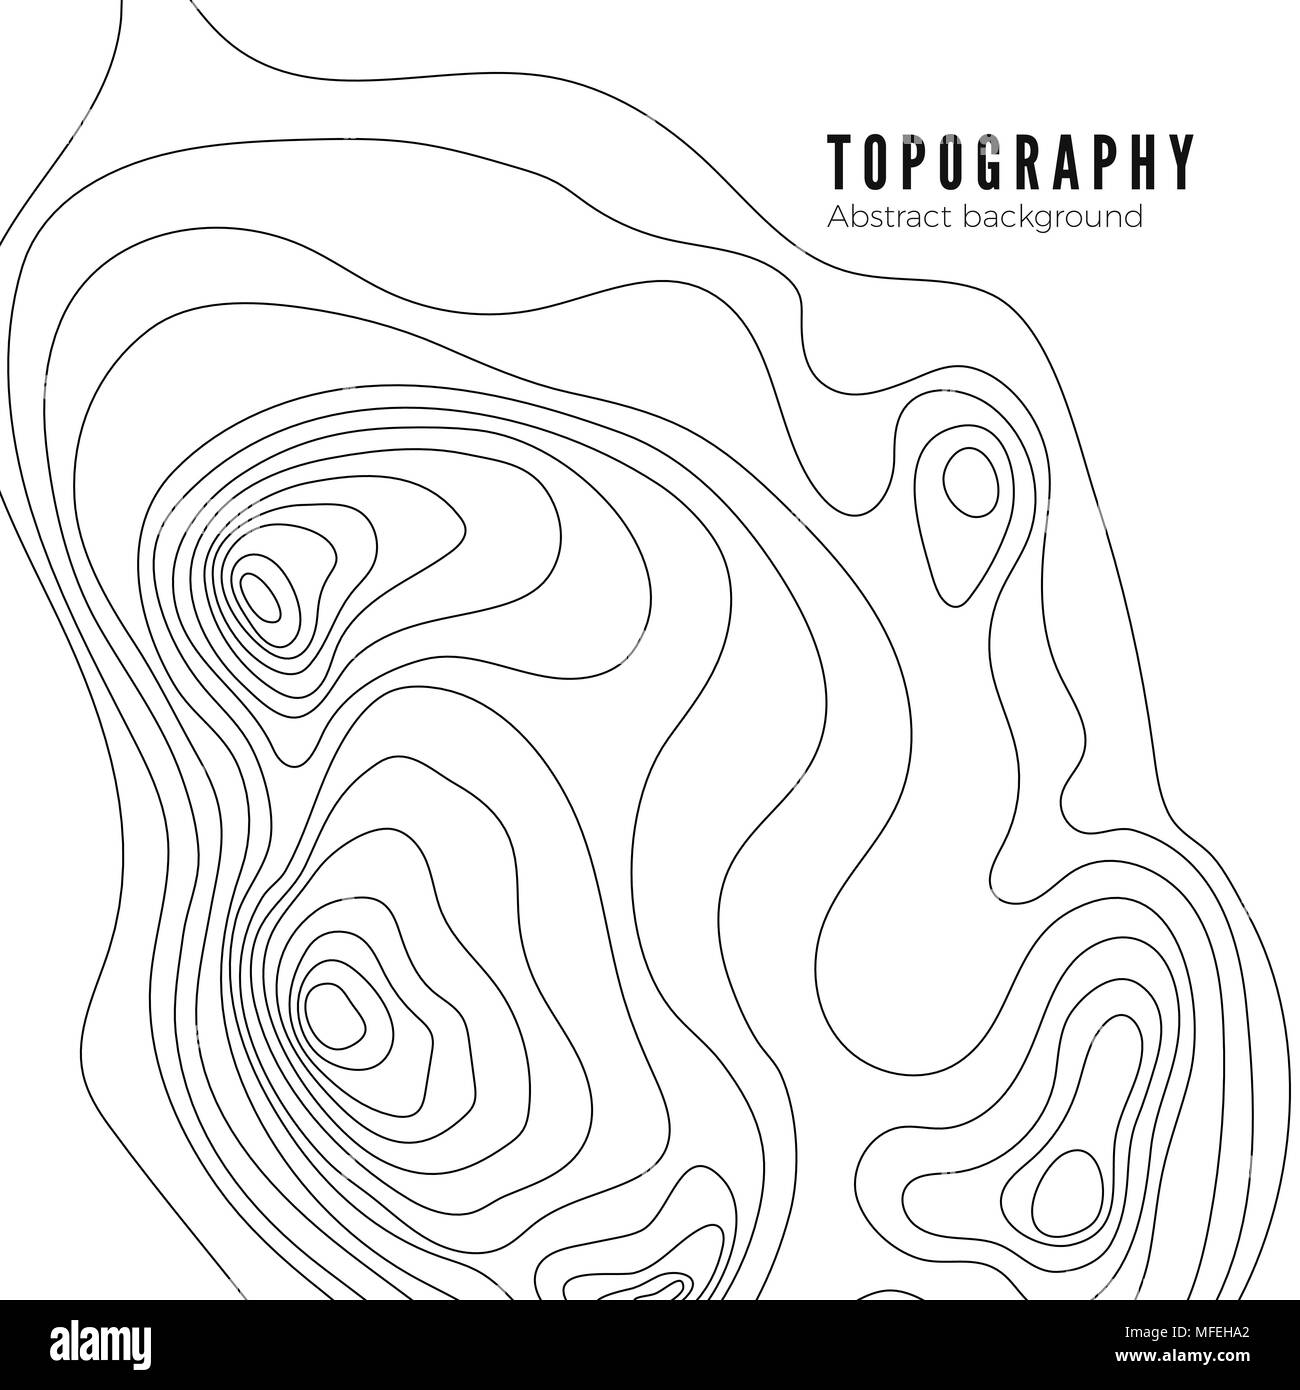 On A Topographic Map Contour Lines Are What